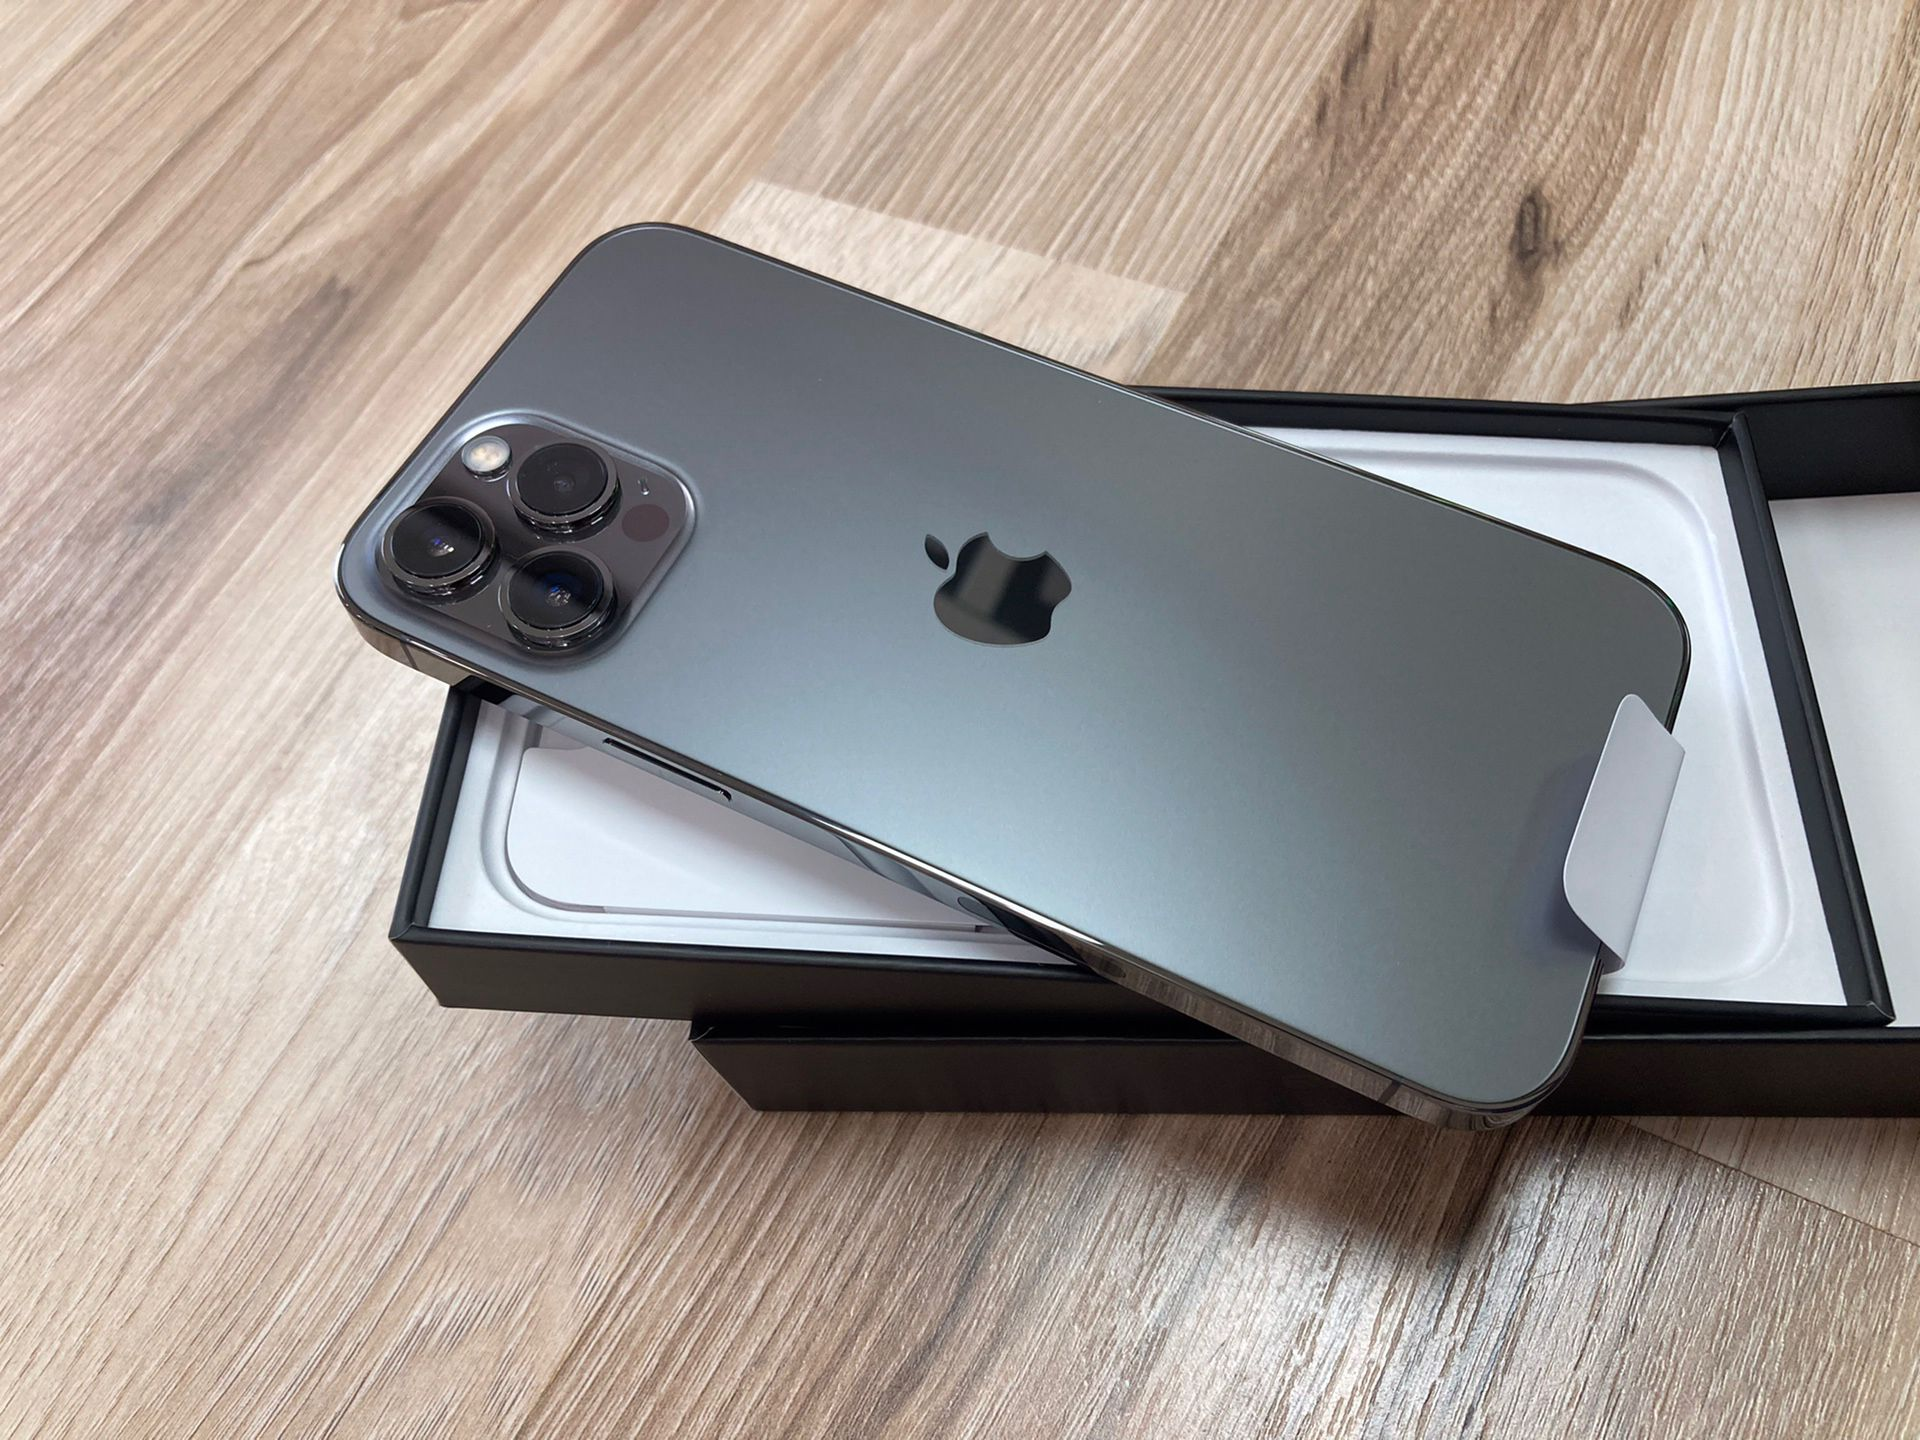 IPHONE 12 PRO MAX/UNLOCK/128GB/AVAILABLE NOW/YOU CAN FINANCE IT O PAY CASH/NO CREDIT/$50-$80DOWN